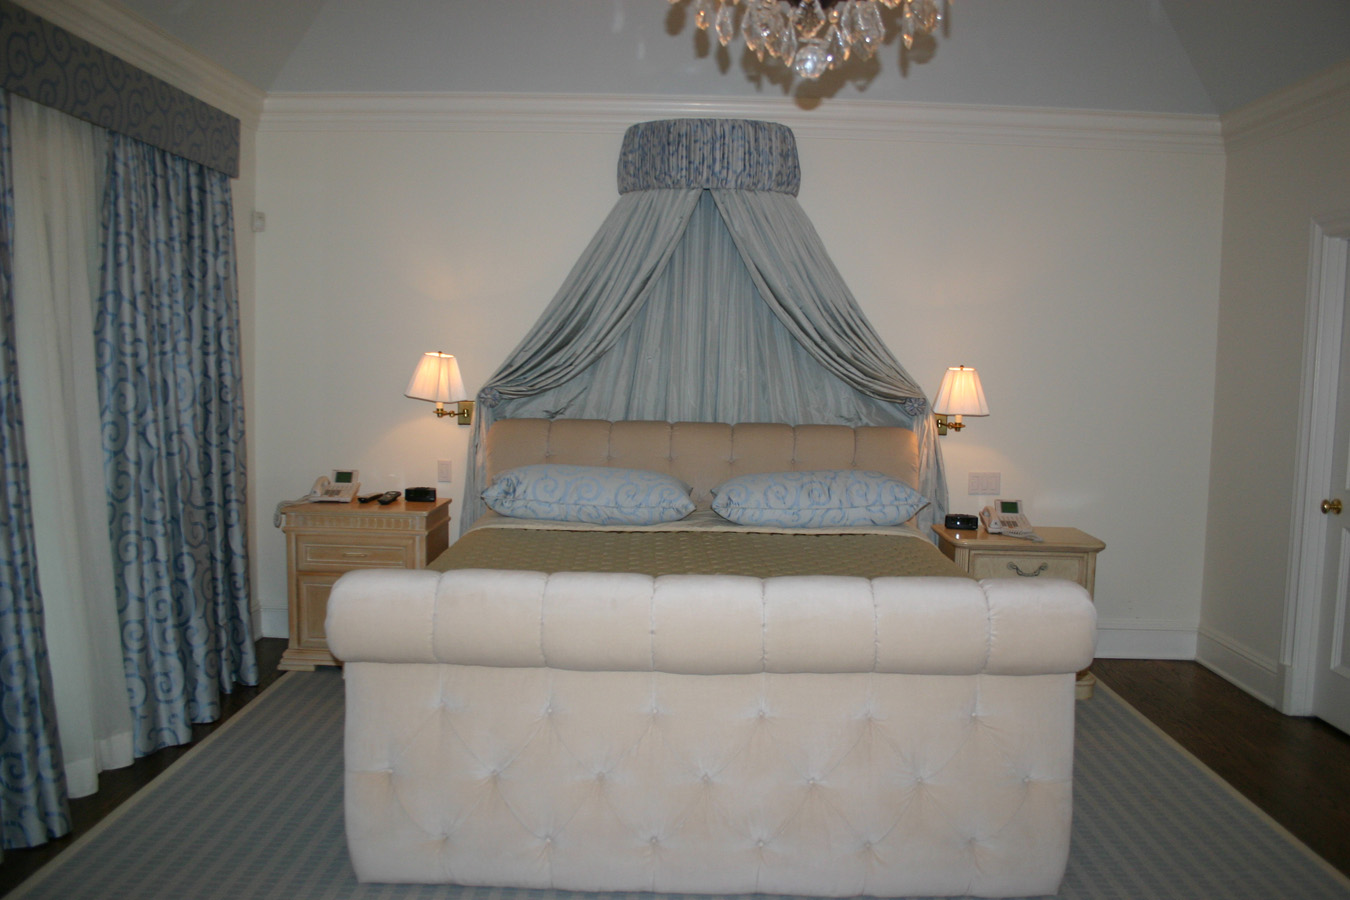 Glamorous 40 blue canopy design inspiration design of for Canopy over bed